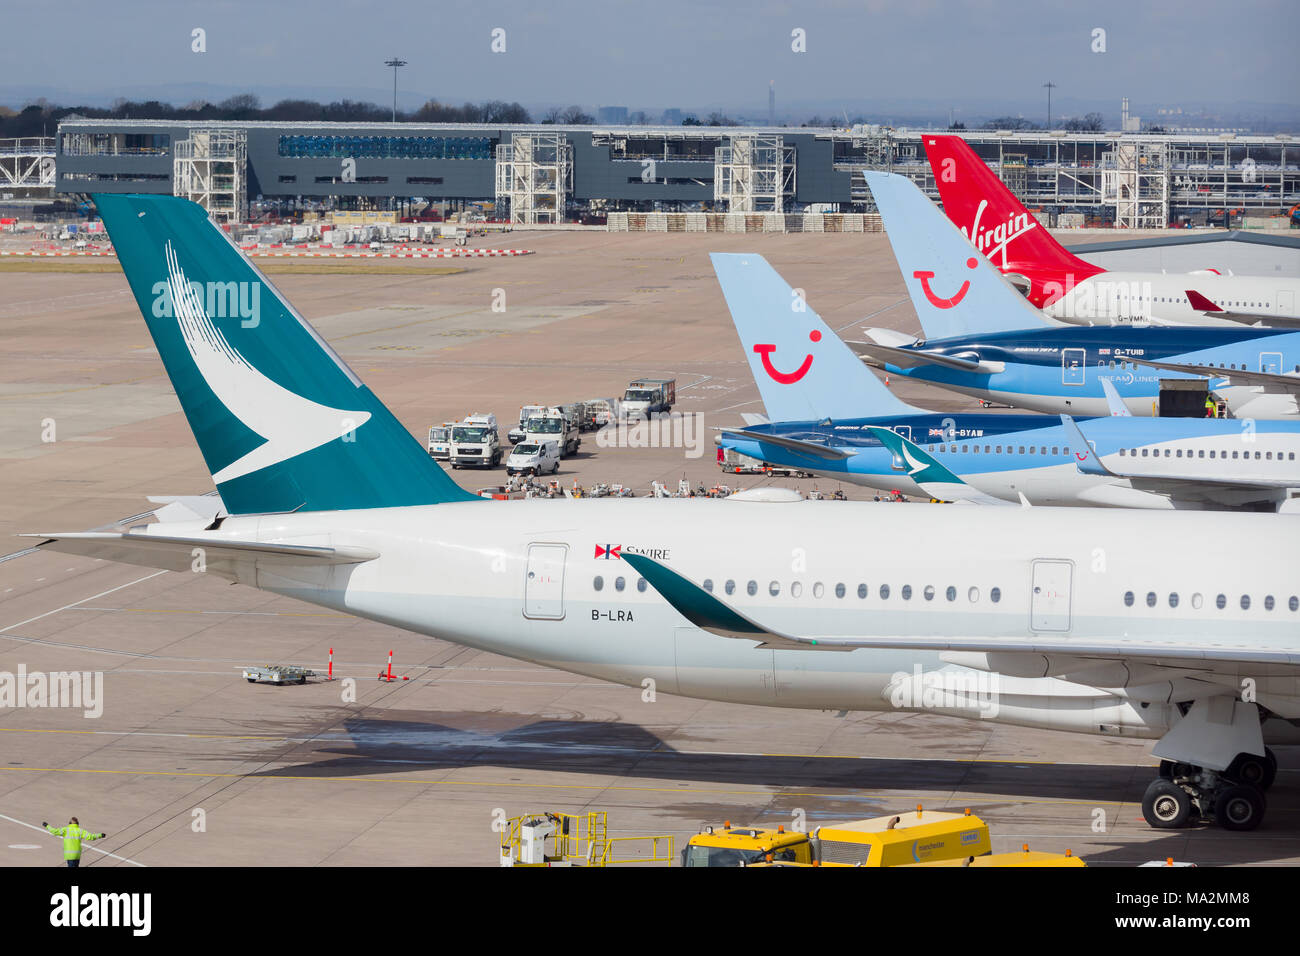 Various tail fins of airliners including Cathay Pacific, Tui and Virgin parked at terminal 2 in Manchester airport - Stock Image